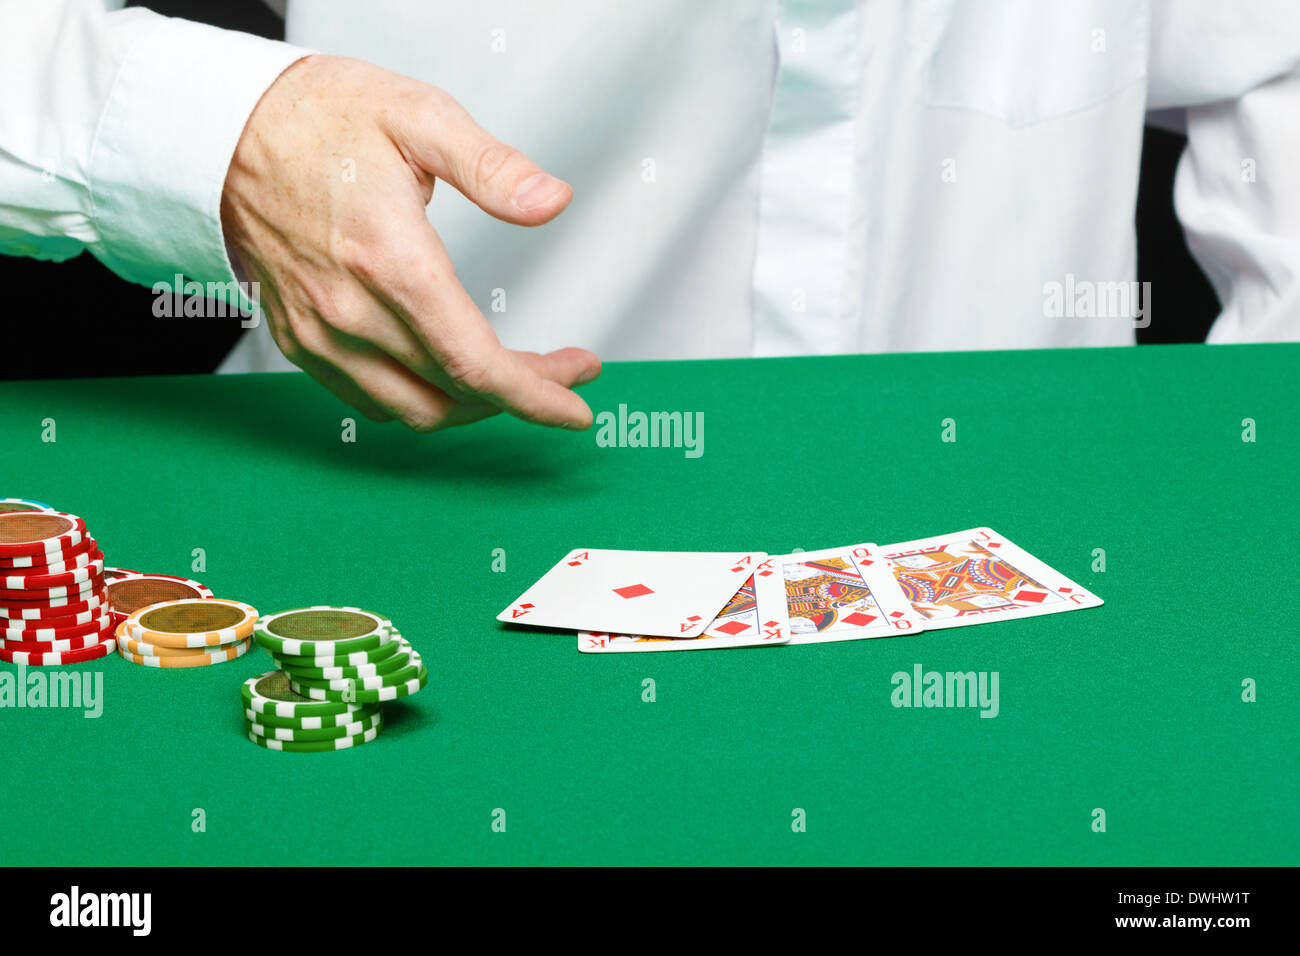 gambler. Male hand with cards and chips on green table - Stock Image